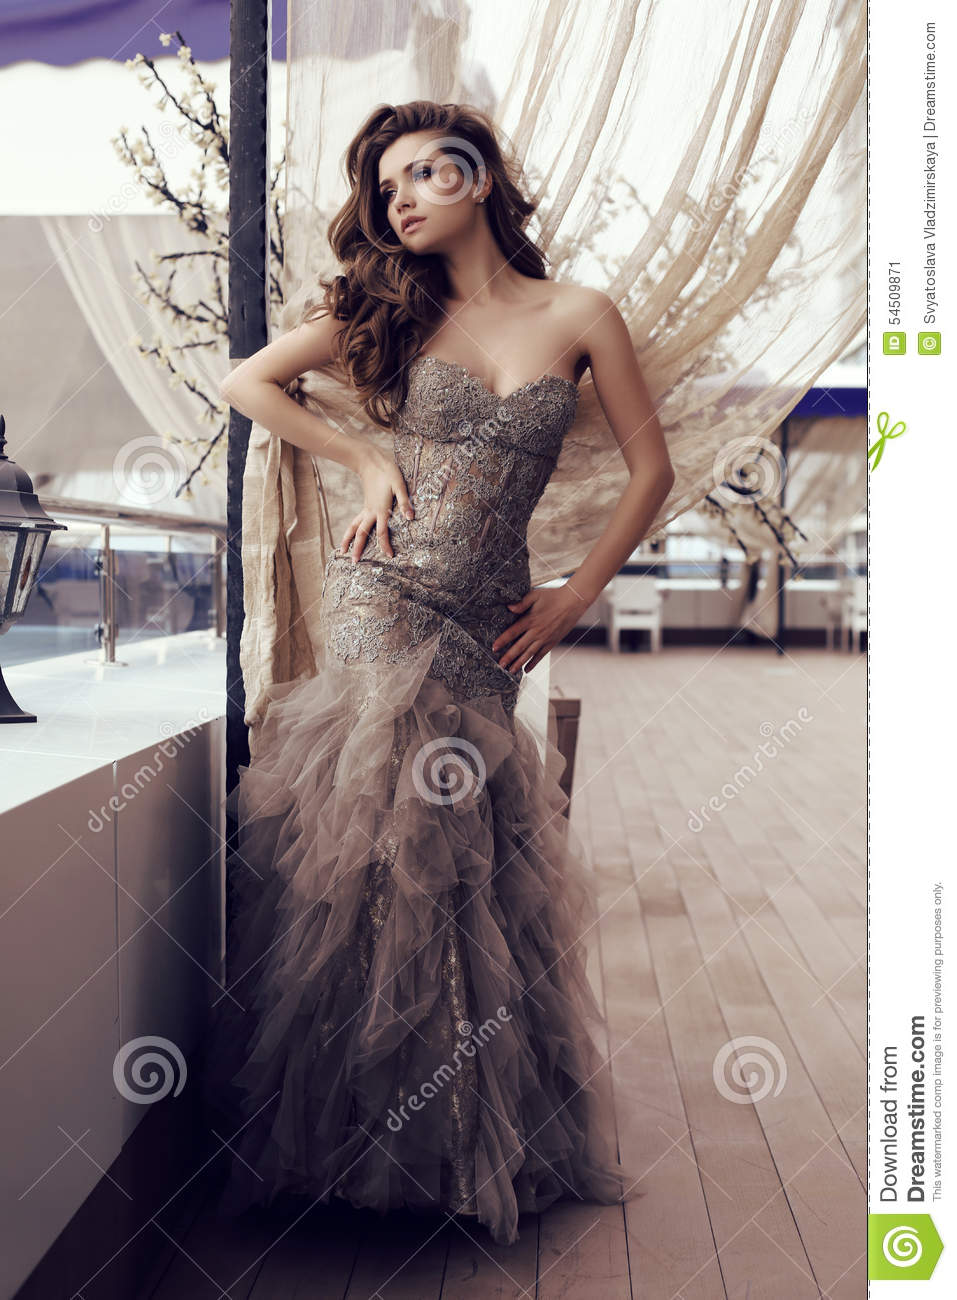 Sensual Woman With Long Dark Hair In Luxurious Sequin